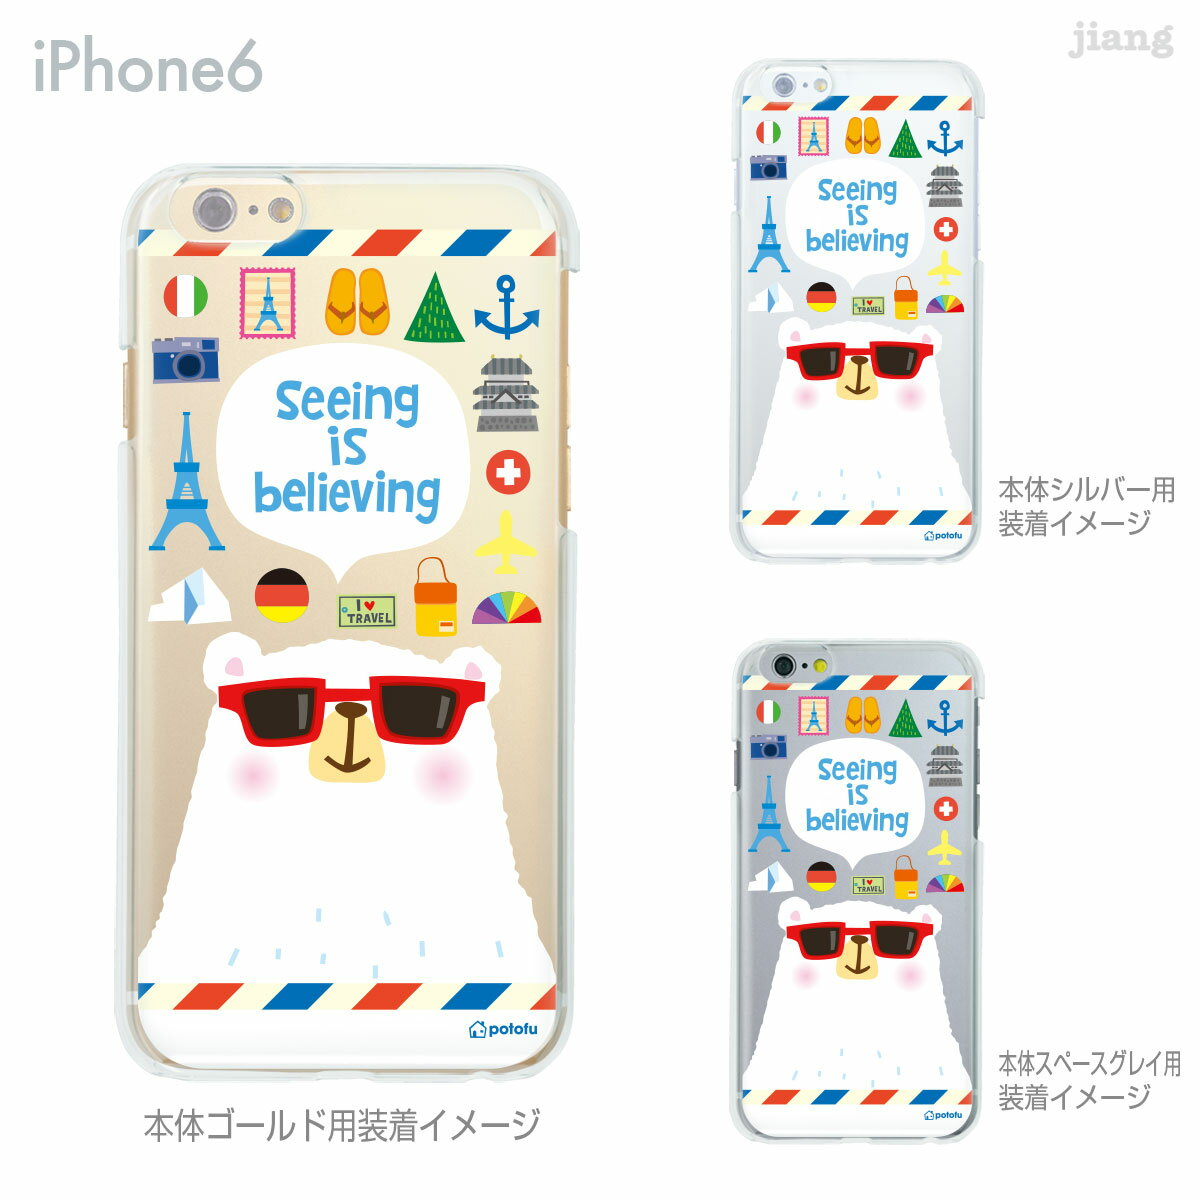 iphoneXSケース iPhoneXS Max iPhoneXR iPhoneX iPhone8 Plus ケース iPhone iphone7ケース iphone7 iphone7s Plus iPhone6s iPhone6 Plus iphoneSE ケース iPhone5s スマホケース ハードケース カバー かわいい potofu 80-ip6-ca0016